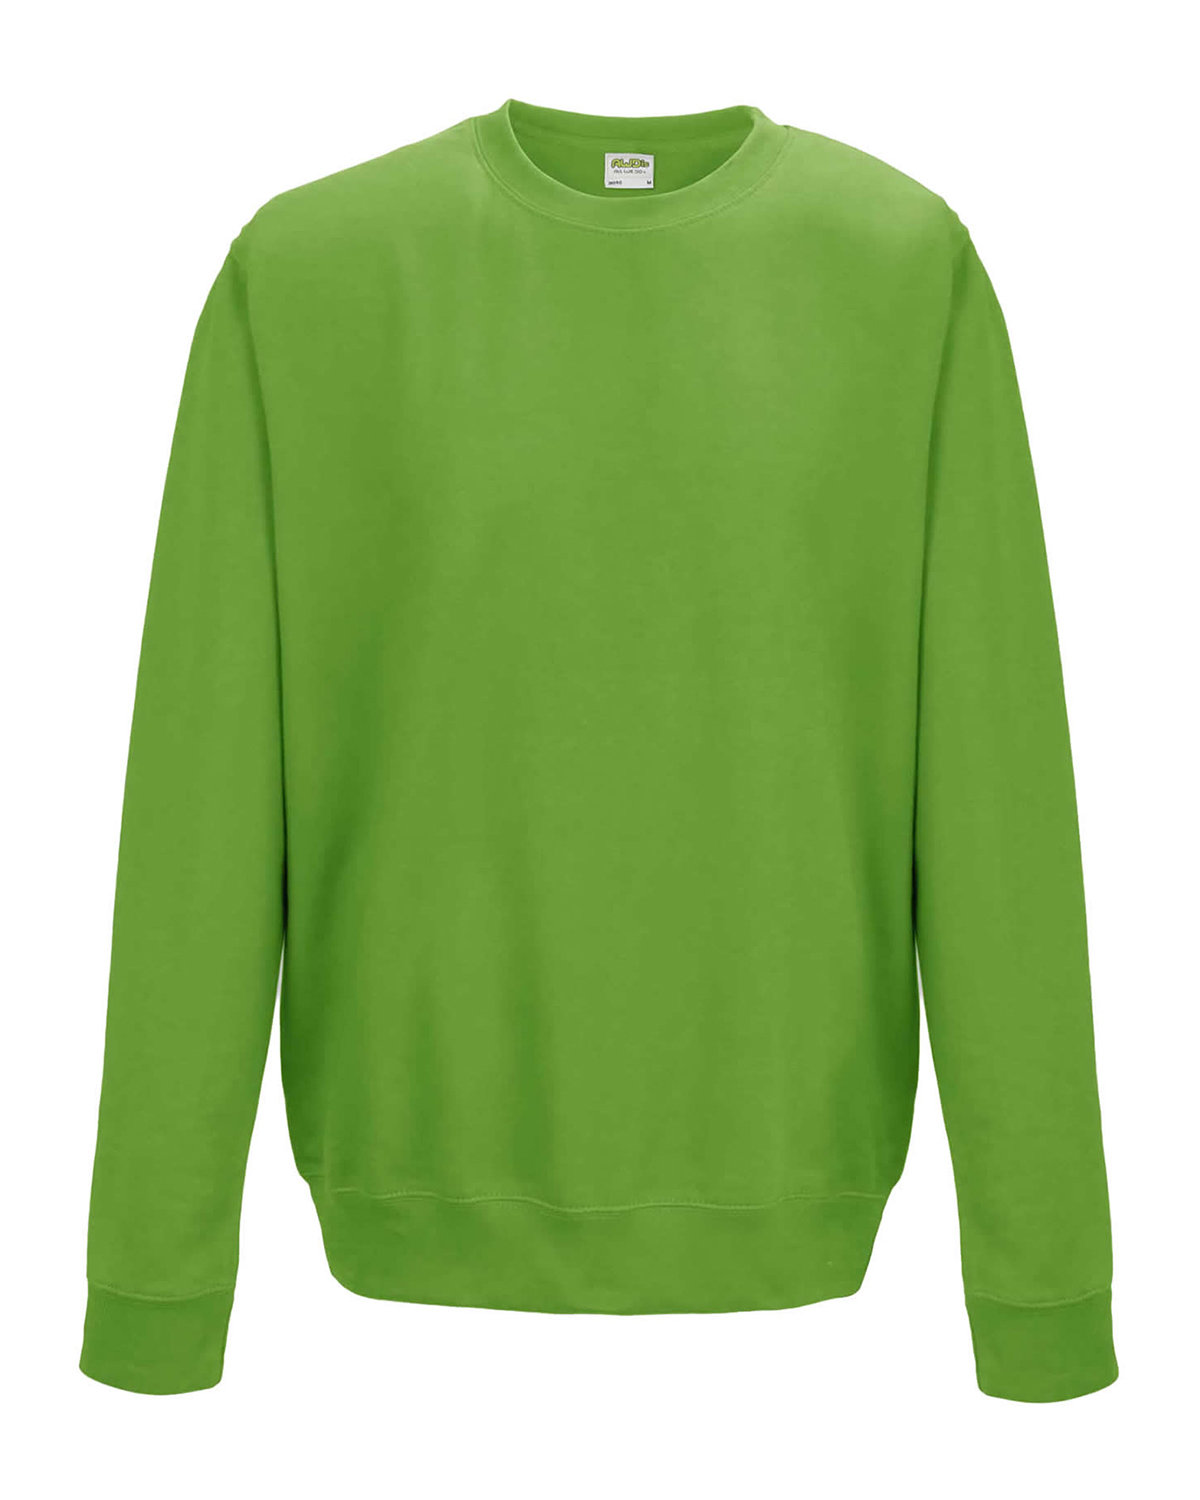 Just Hoods By AWDis Adult 80/20 Midweight College Crewneck Sweatshirt LIME GREEN